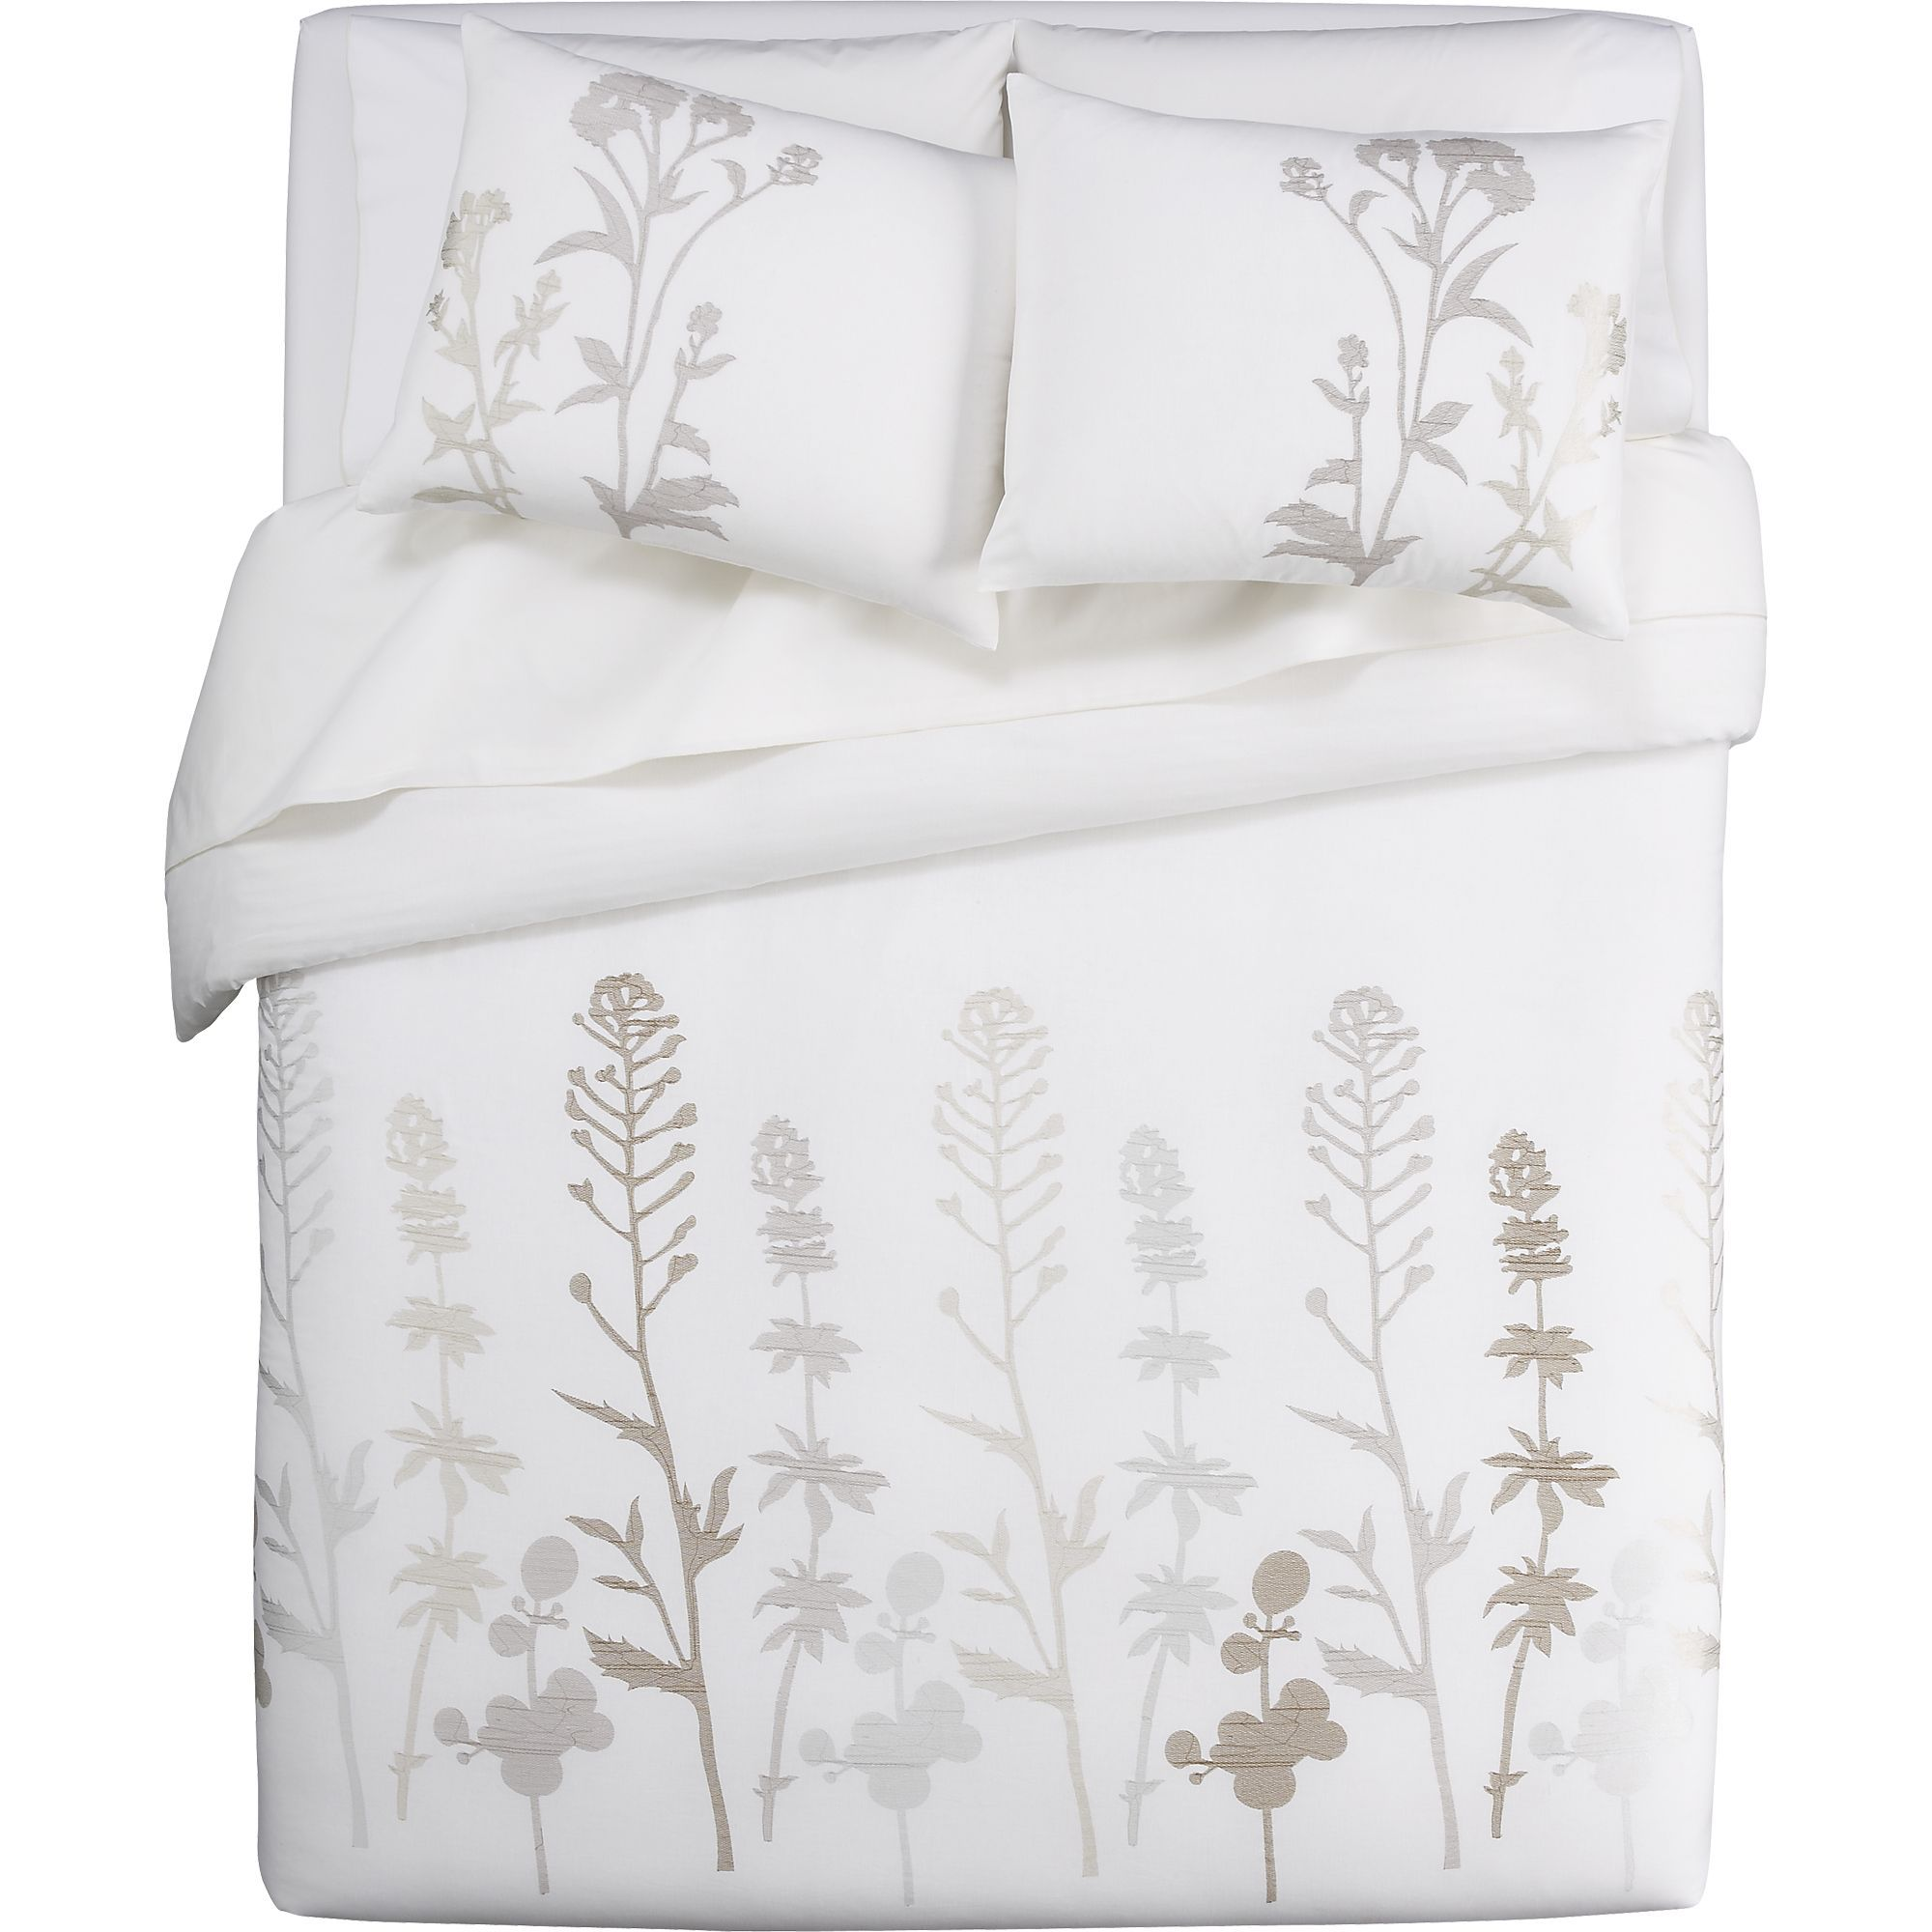 Woodland Duvet Covers And Pillow Shams Natural Duvet Covers